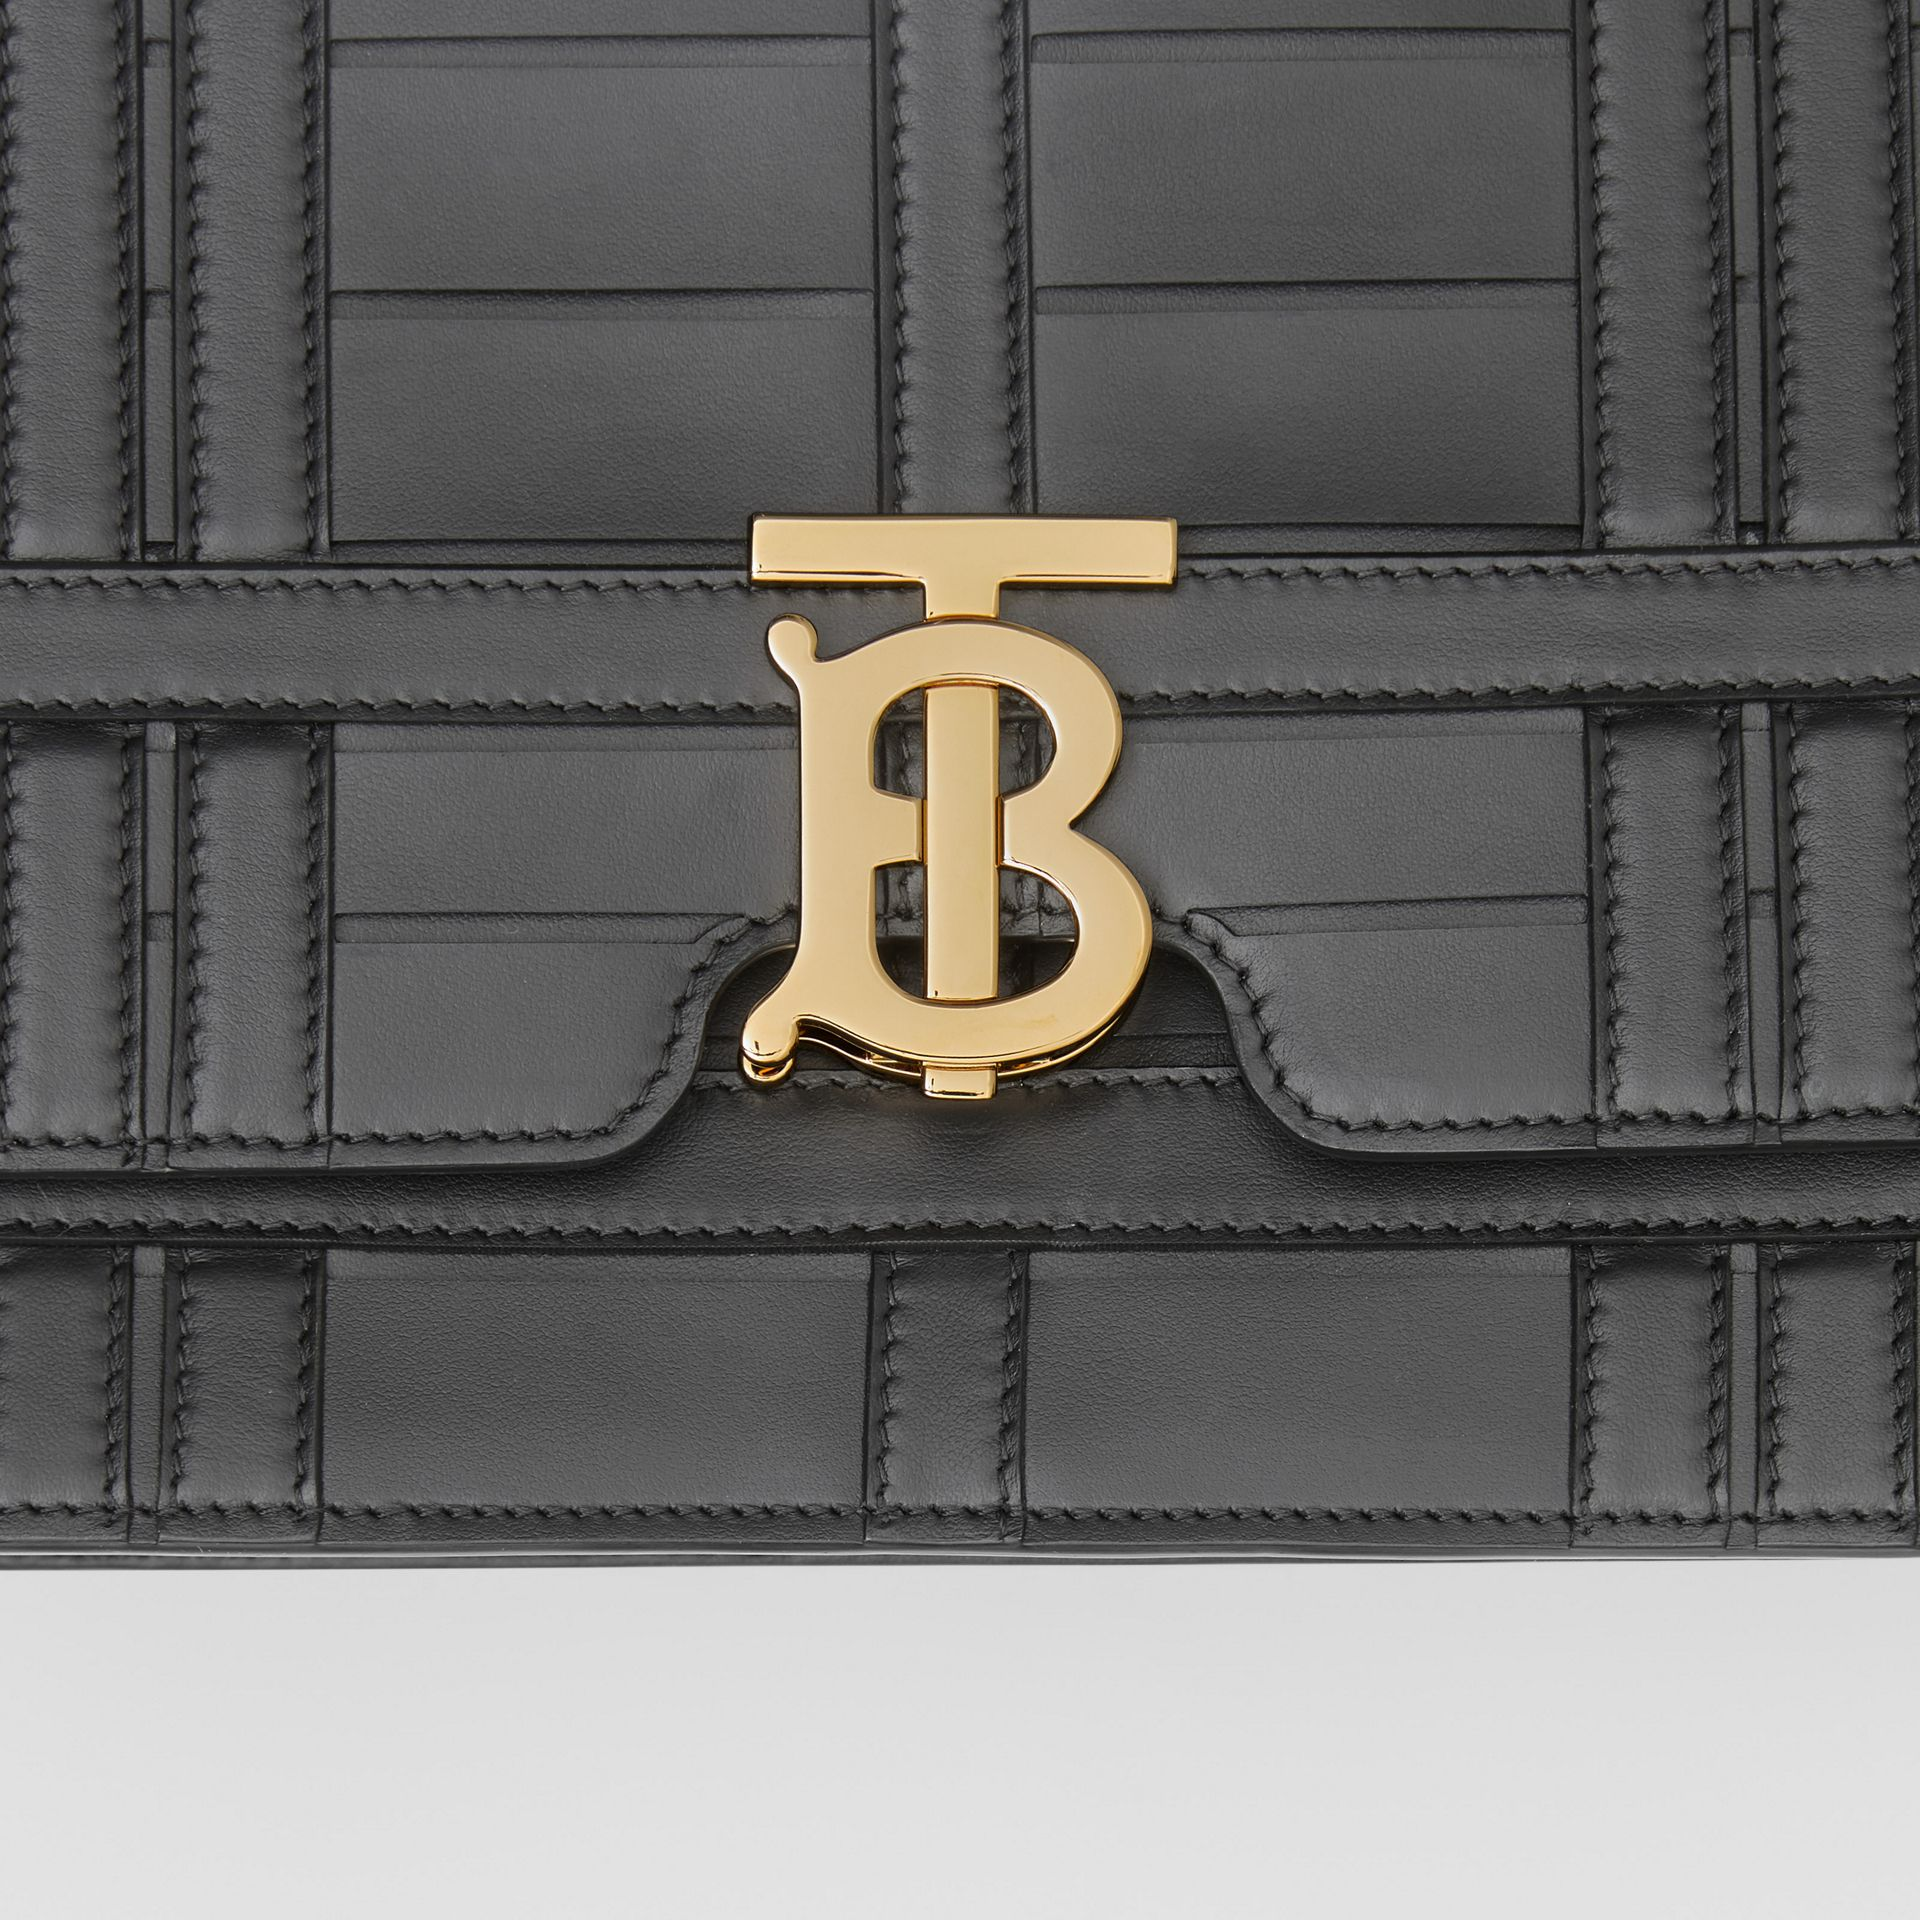 Medium Woven Leather TB Bag in Black - Women | Burberry Hong Kong S.A.R. - gallery image 1